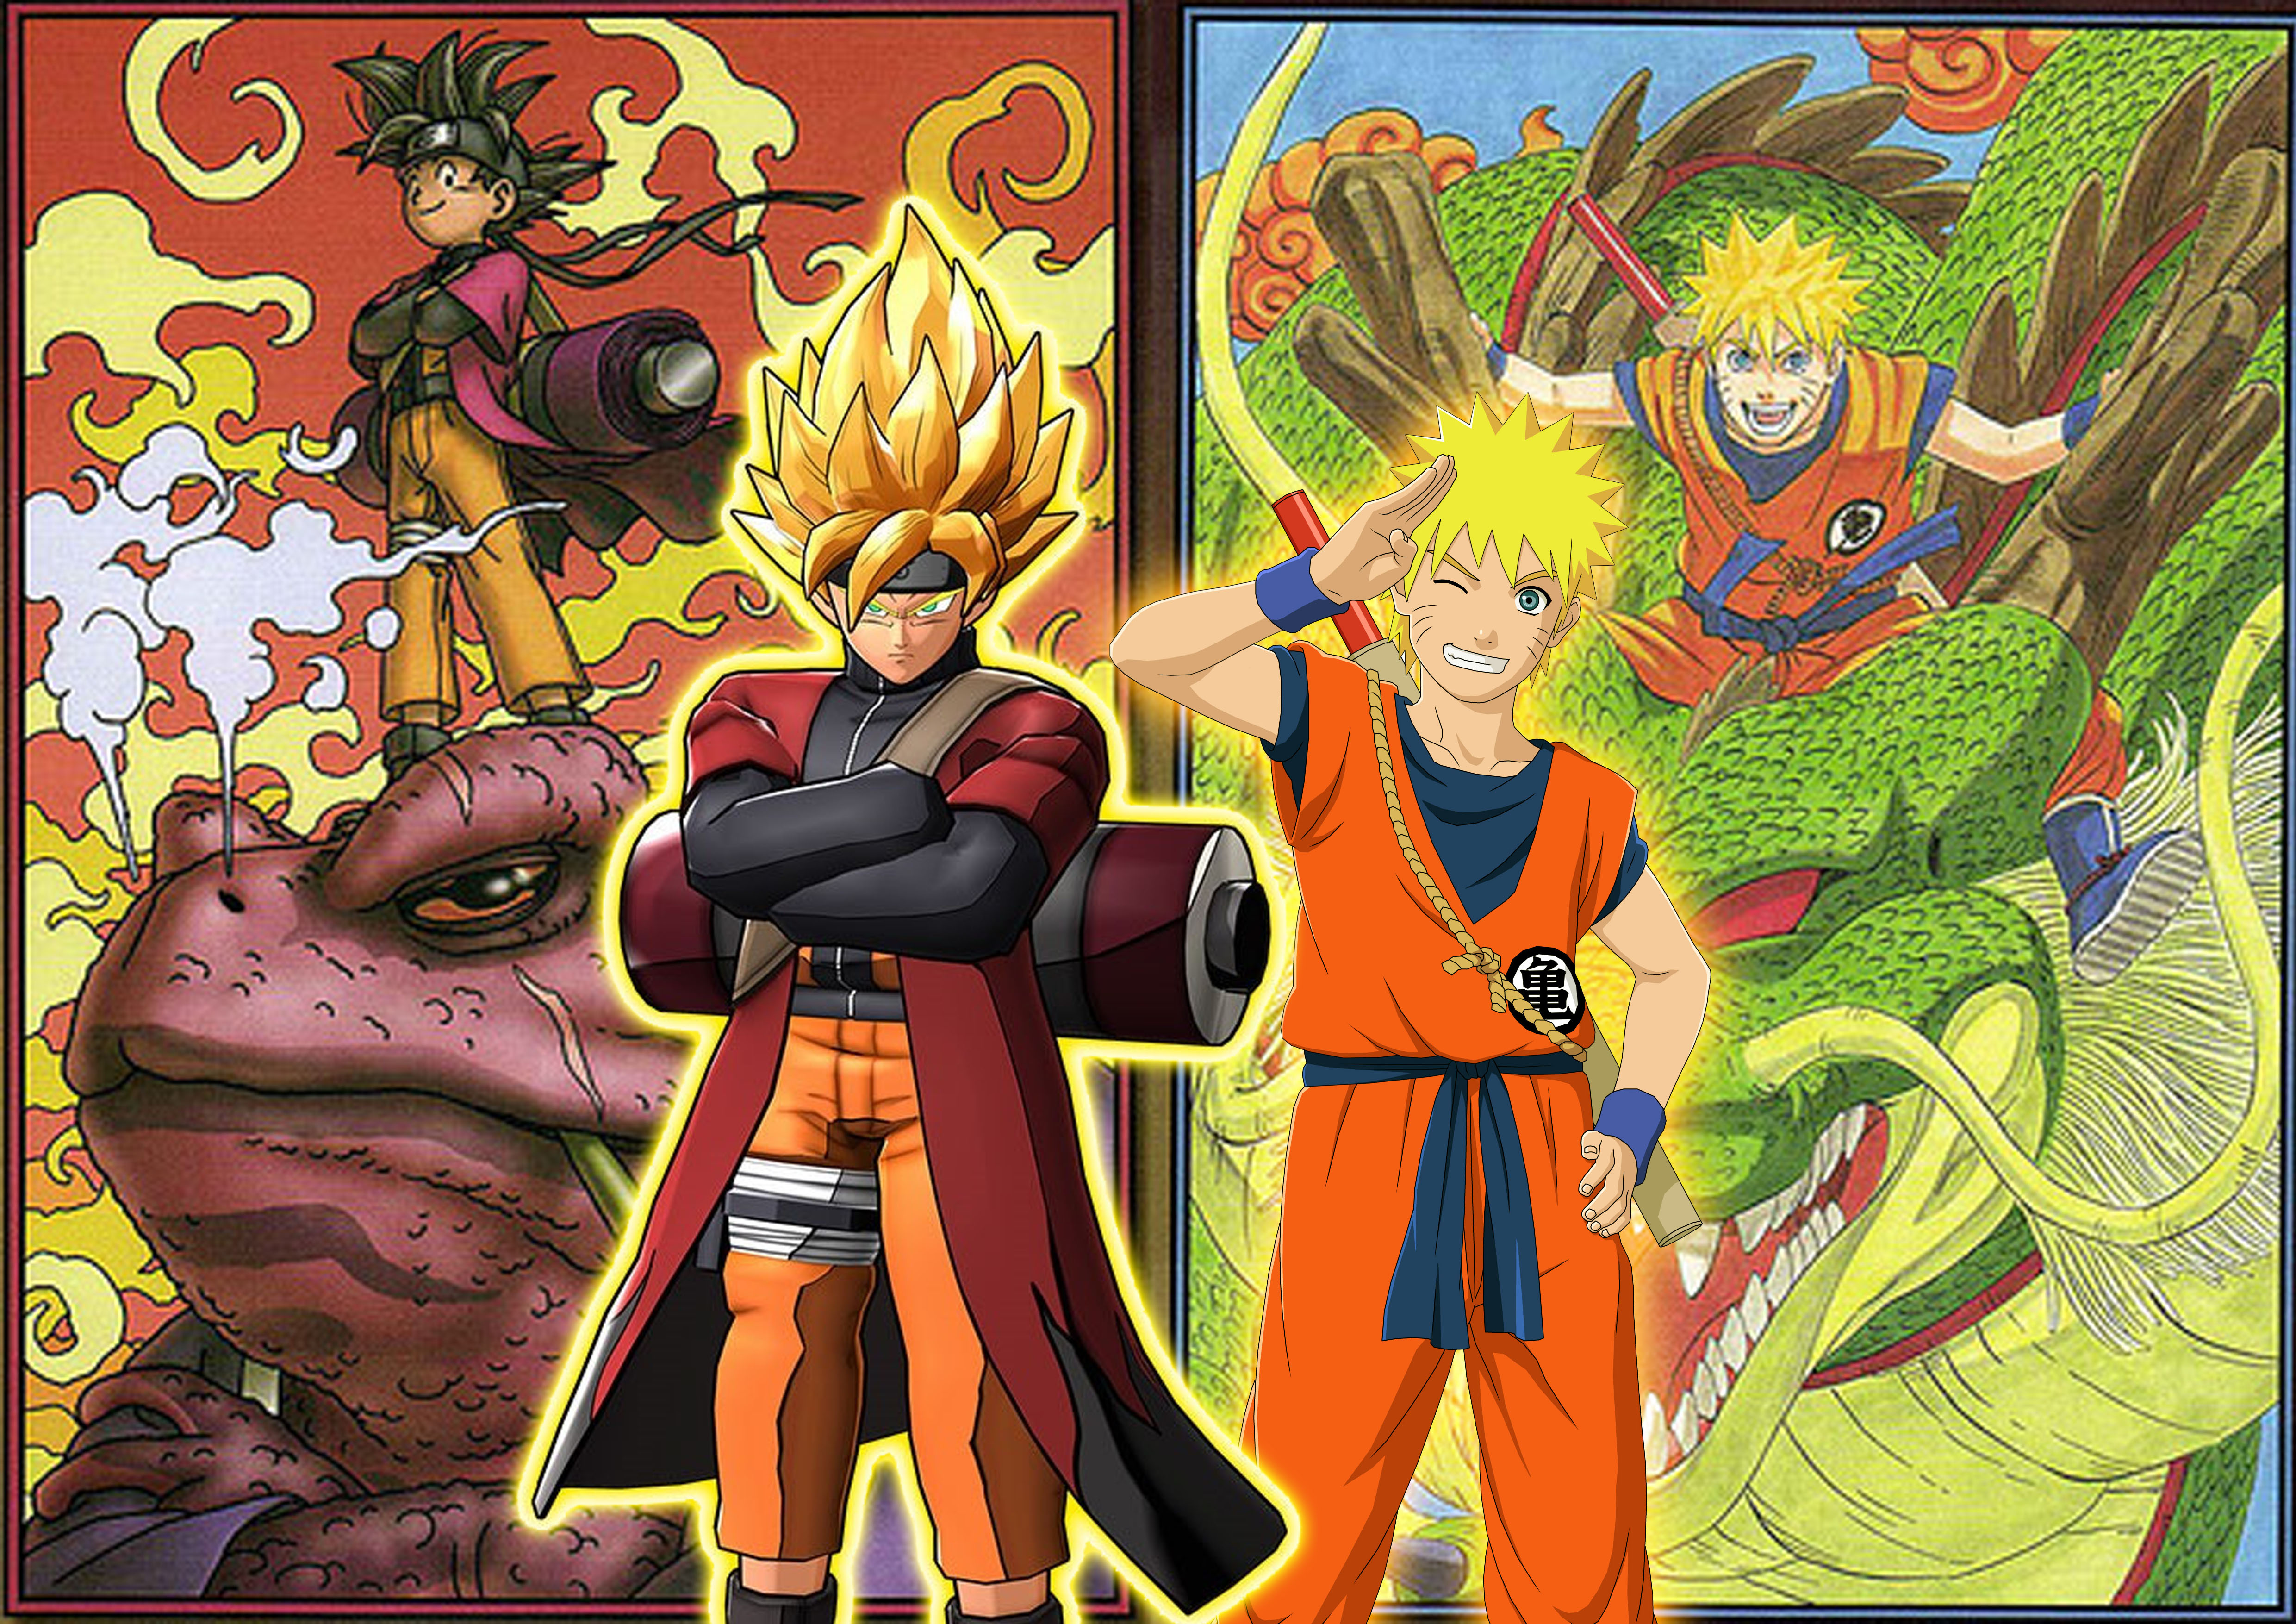 Dragon Ball Z X Naruto Shippuden DLC by SuperSaiyanCrashNaruto Vs Avatar Vs Dragon Ball Z